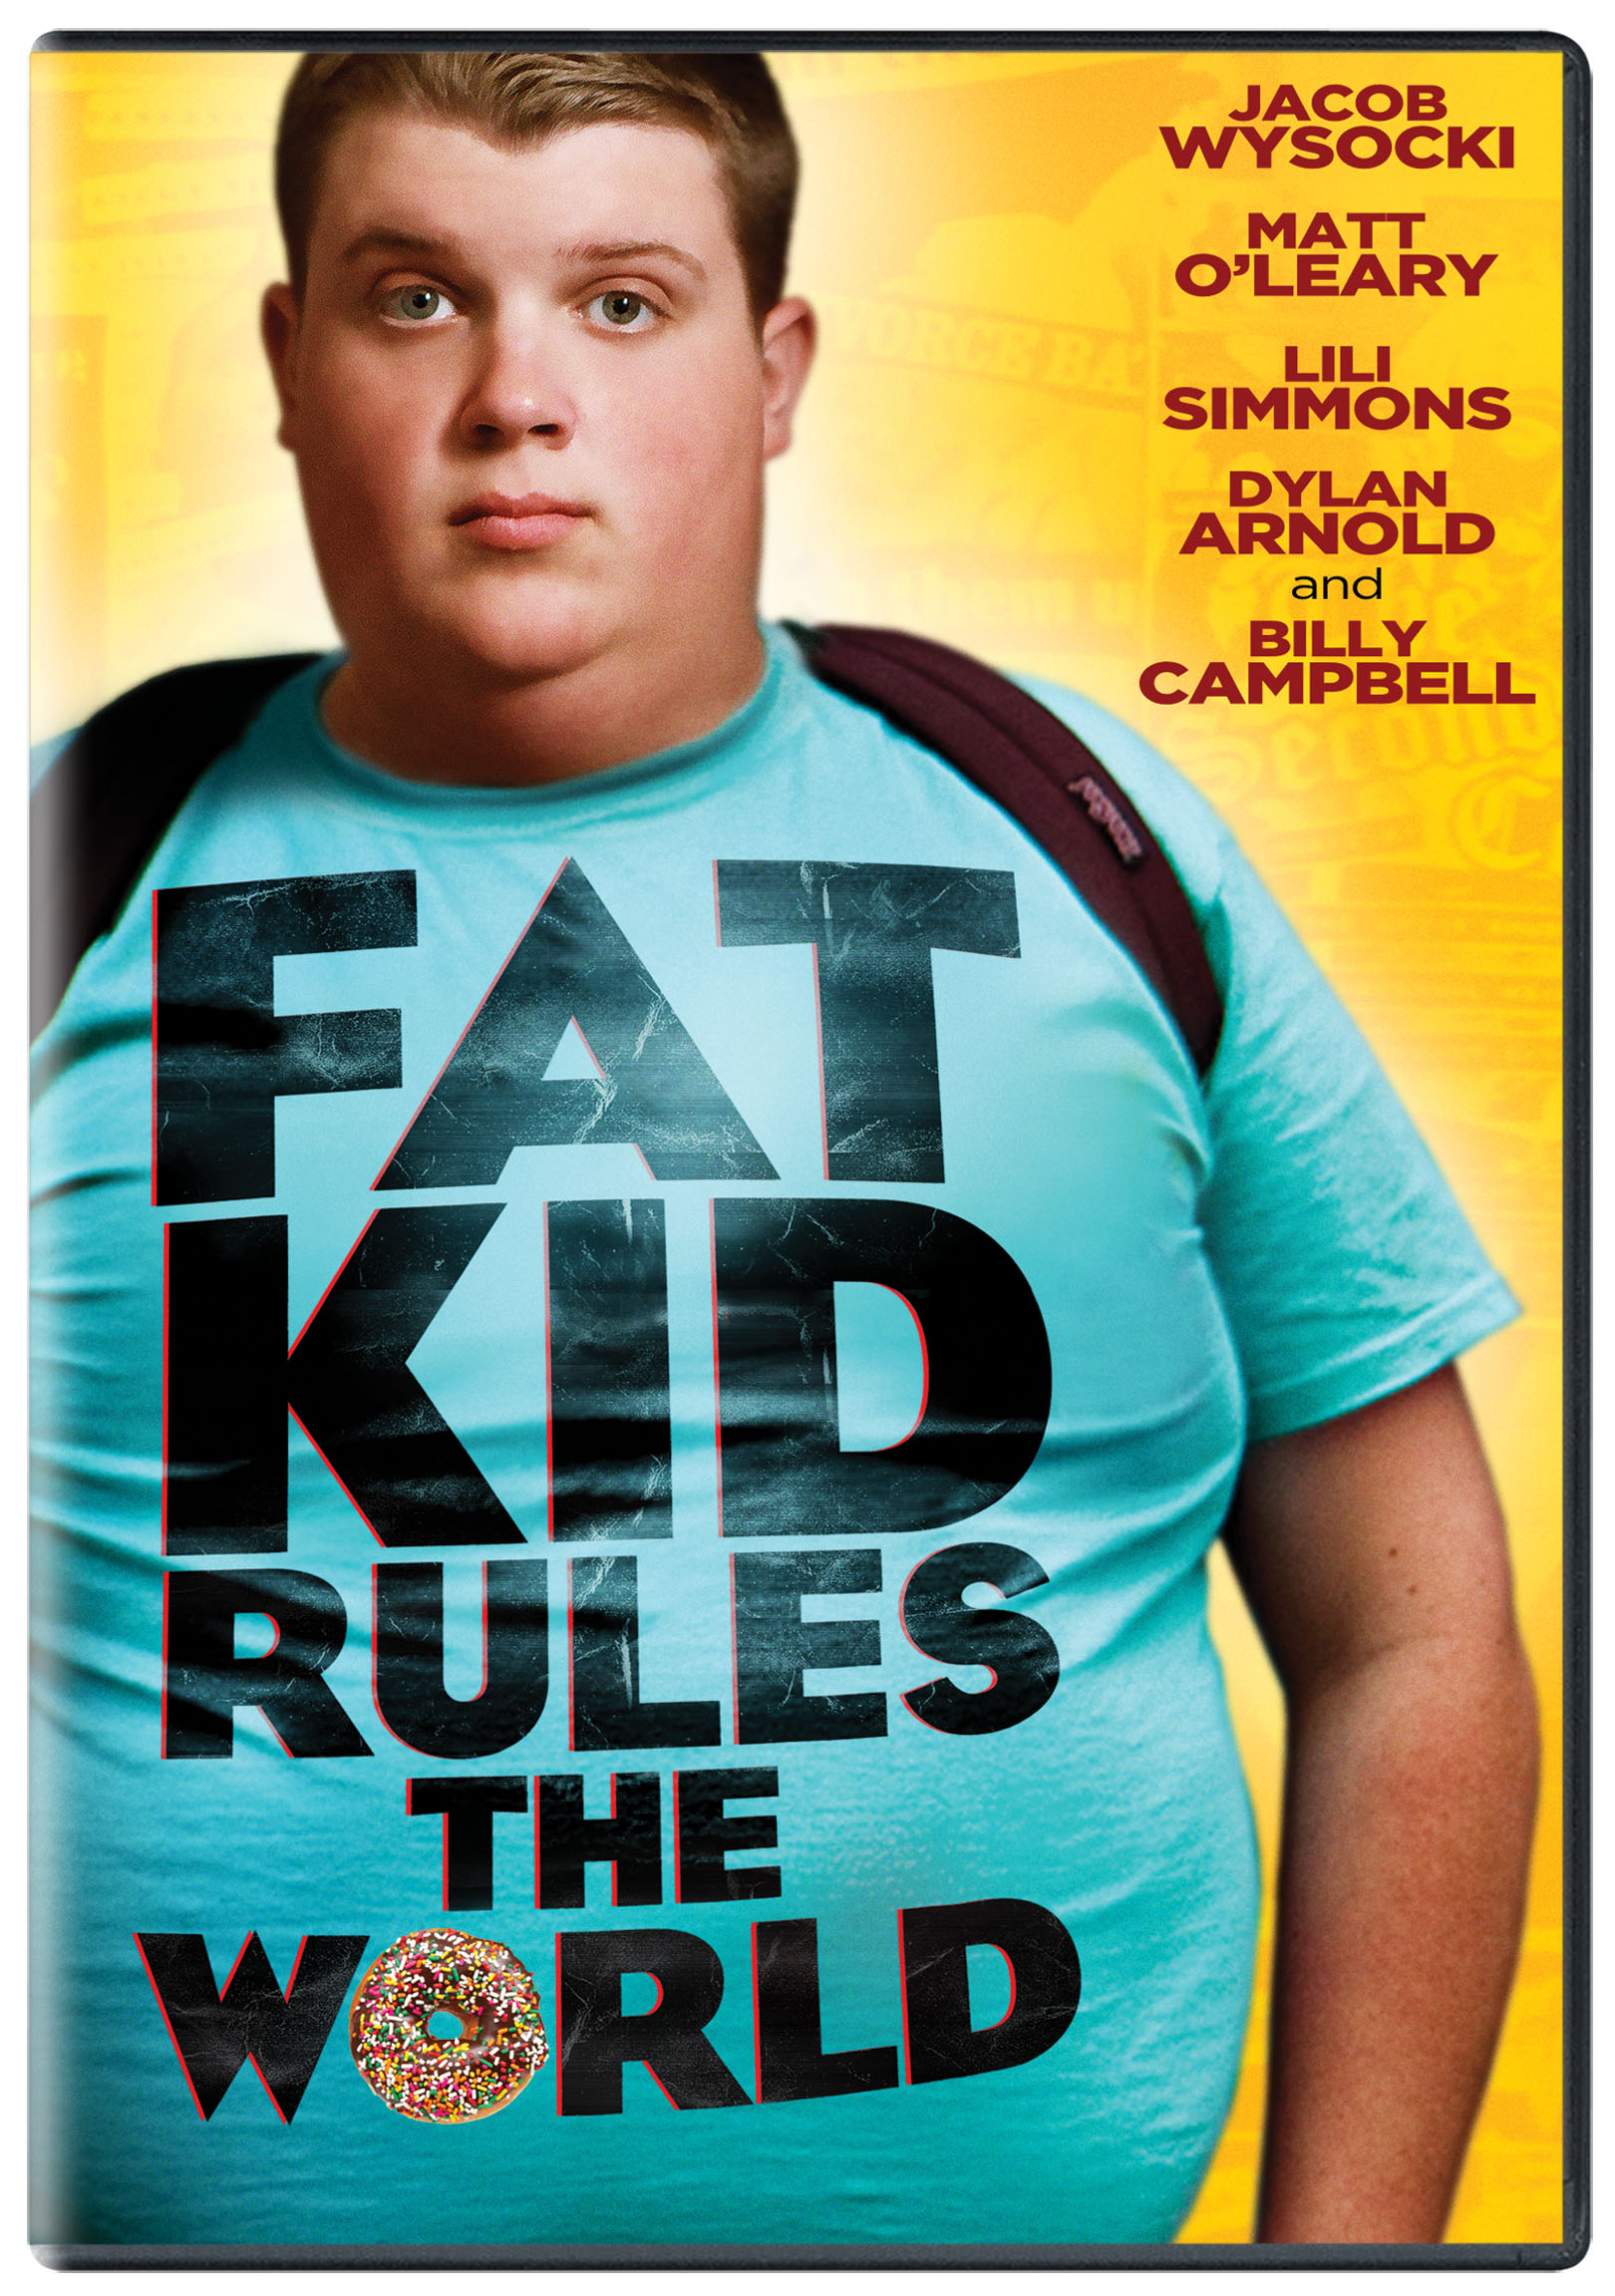 DVD Review: 'Fat Kid Rules the World' Still Remains as one of My Favorites of 2012